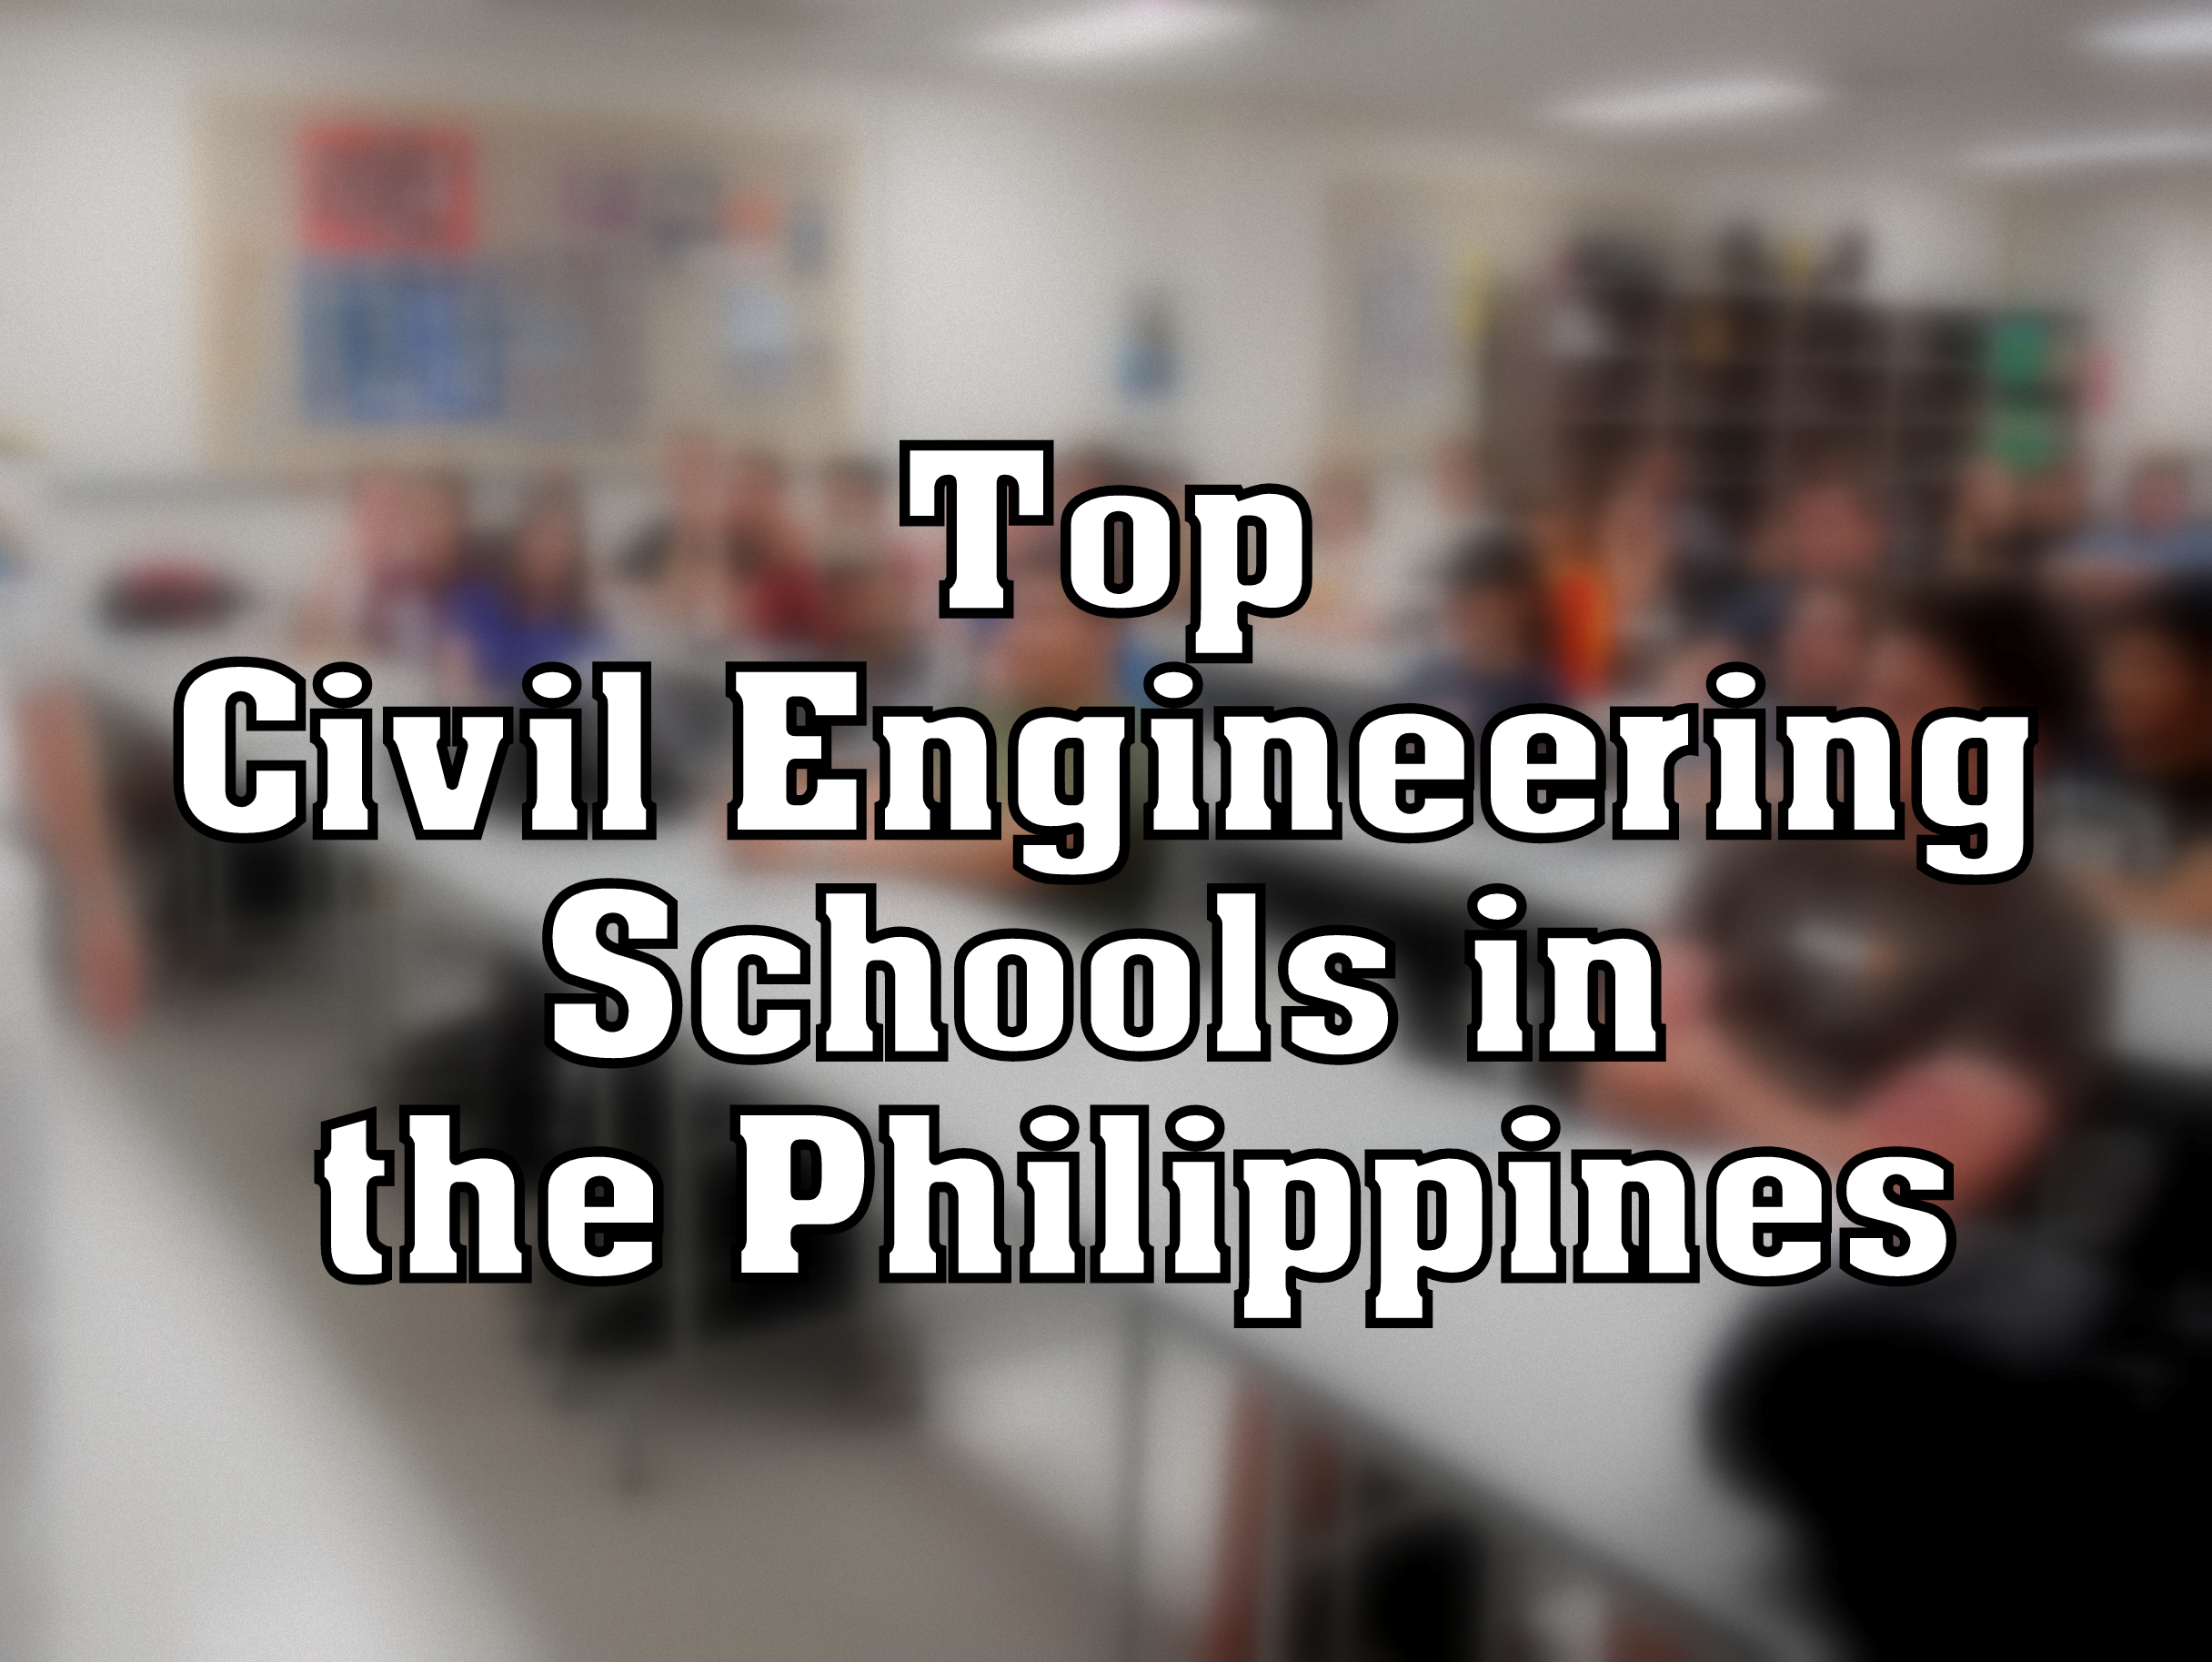 Here is our list of top Civil Engineering School